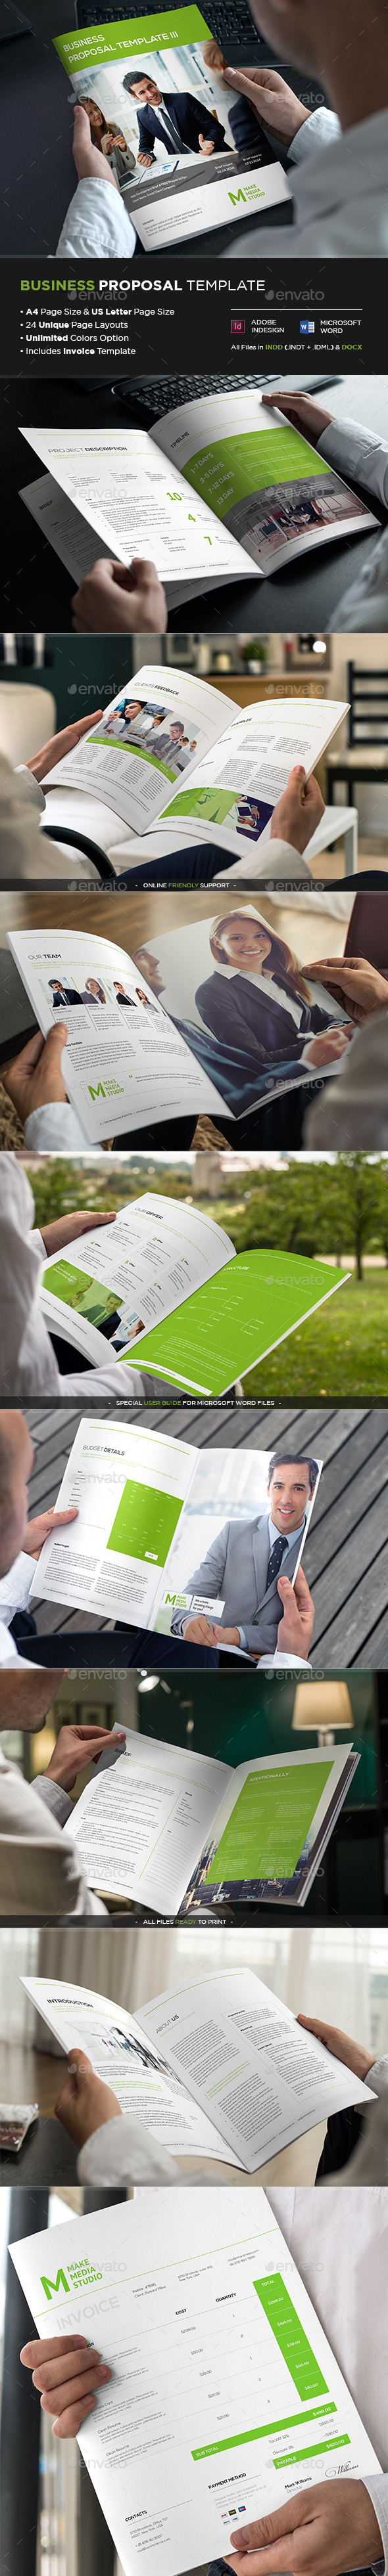 GraphicRiver Business Proposal Template III 9013792